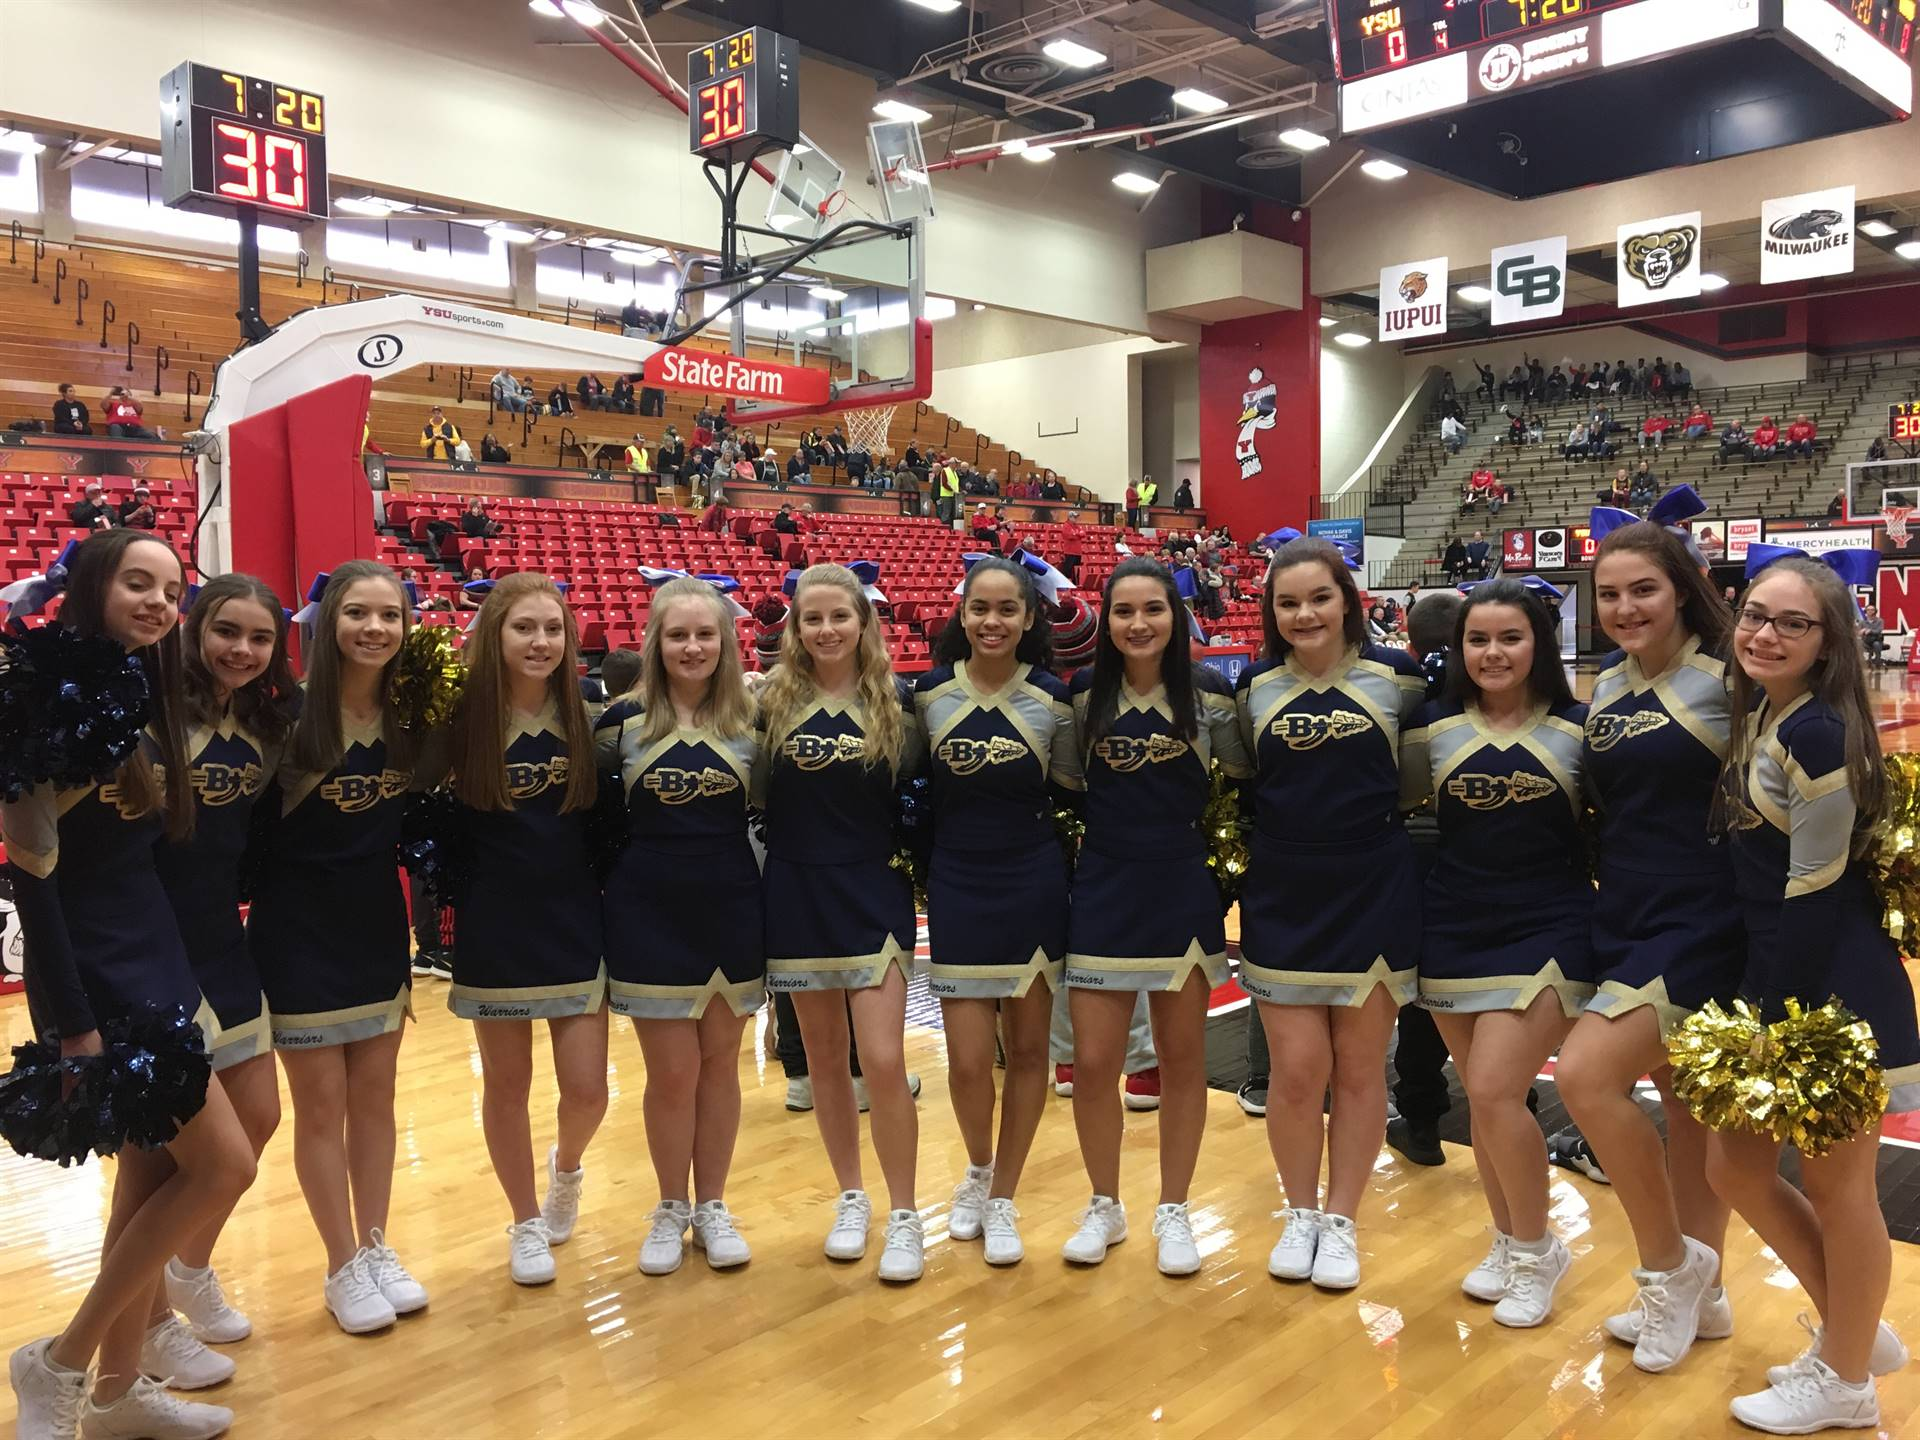 BHS Cheerleaders cheered at halftime during a YSU Mens Basketball game.